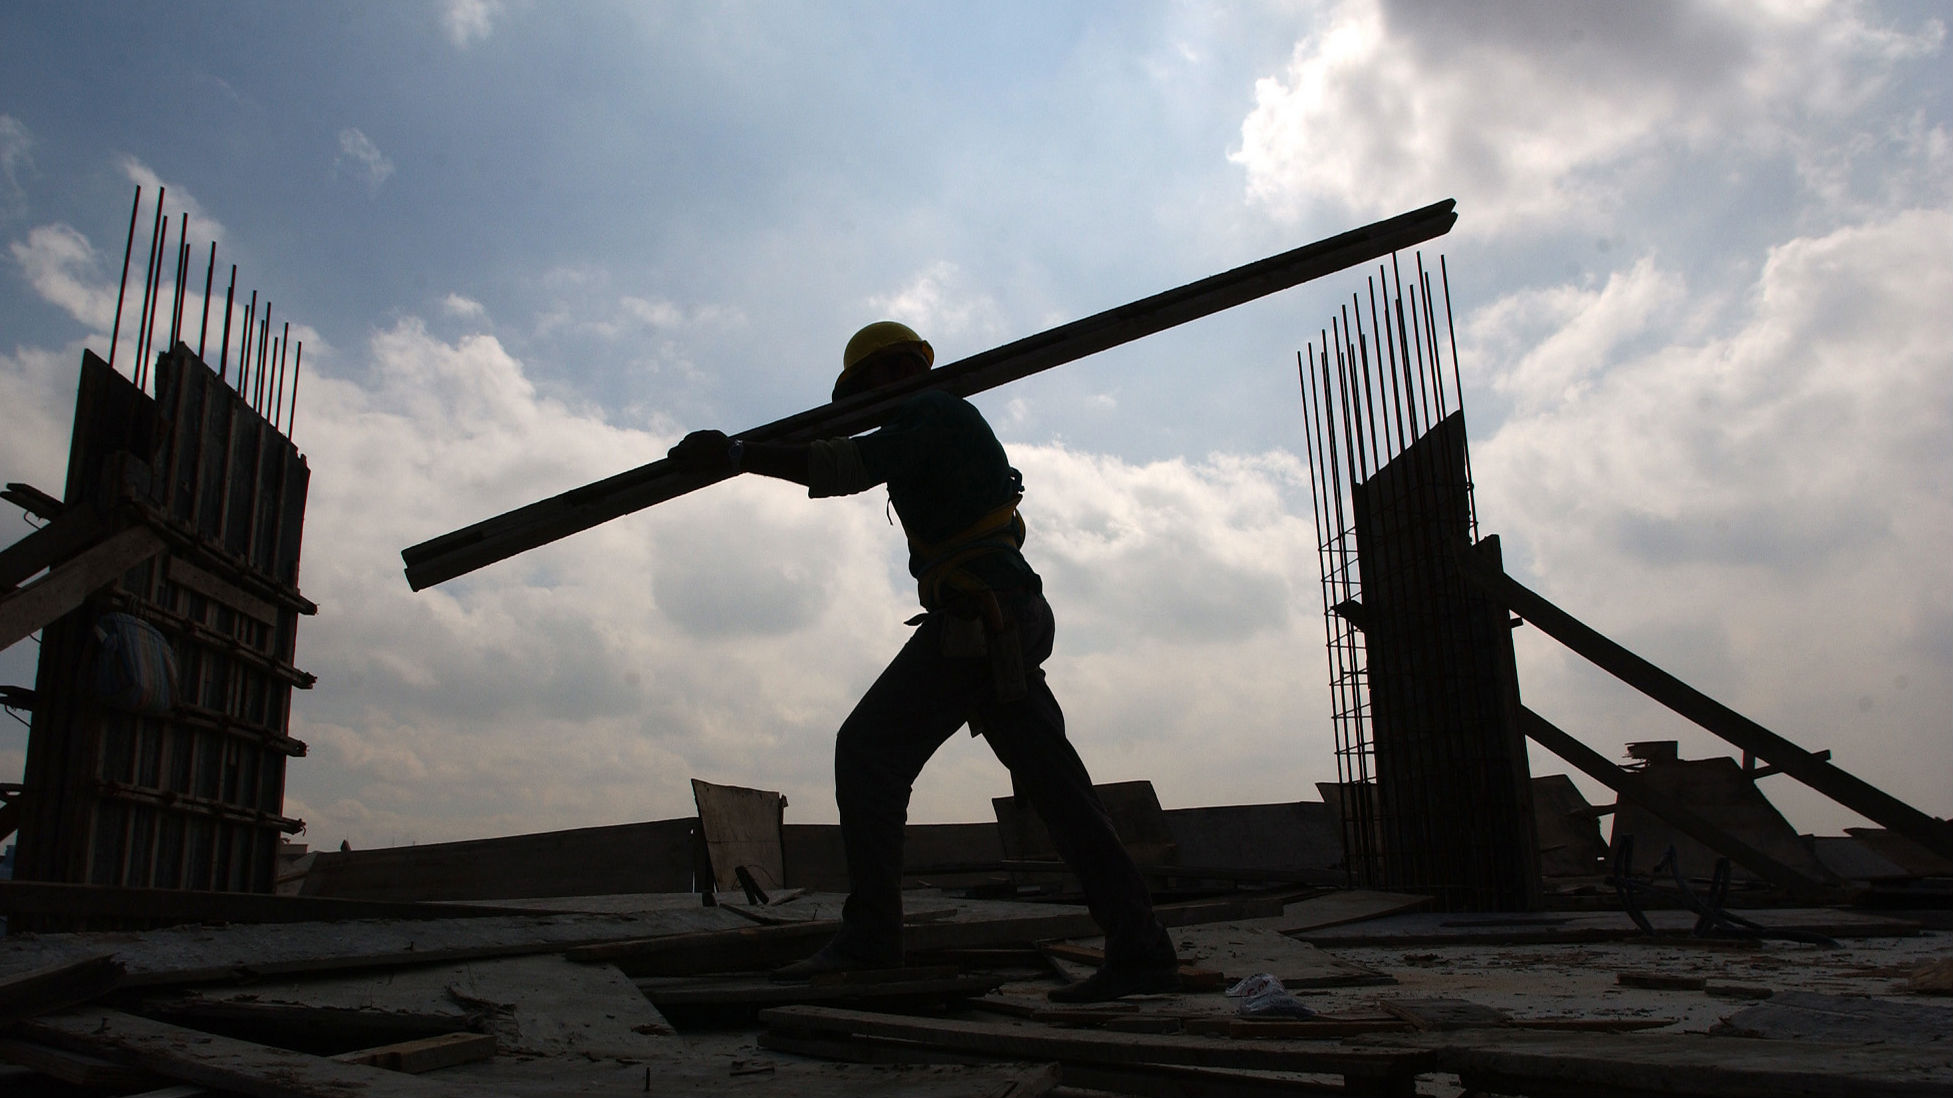 A construction worker carries a beam at the top of a building in Sao Paulo, Brazil, on Tuesday, September 30, 2003. Brazil's economy will probably grow less than 1 percent this year, representing the worst performance for South America's largest country in five years, according to the Central Bank. The growth forecast was a revision of a previous estimate predicting anemic 1.5 percent for this year, the same as last year's rate. If the more pessimistic forecast proves true, this year would be the mostdismal for Brazilian economic growth since 1998.